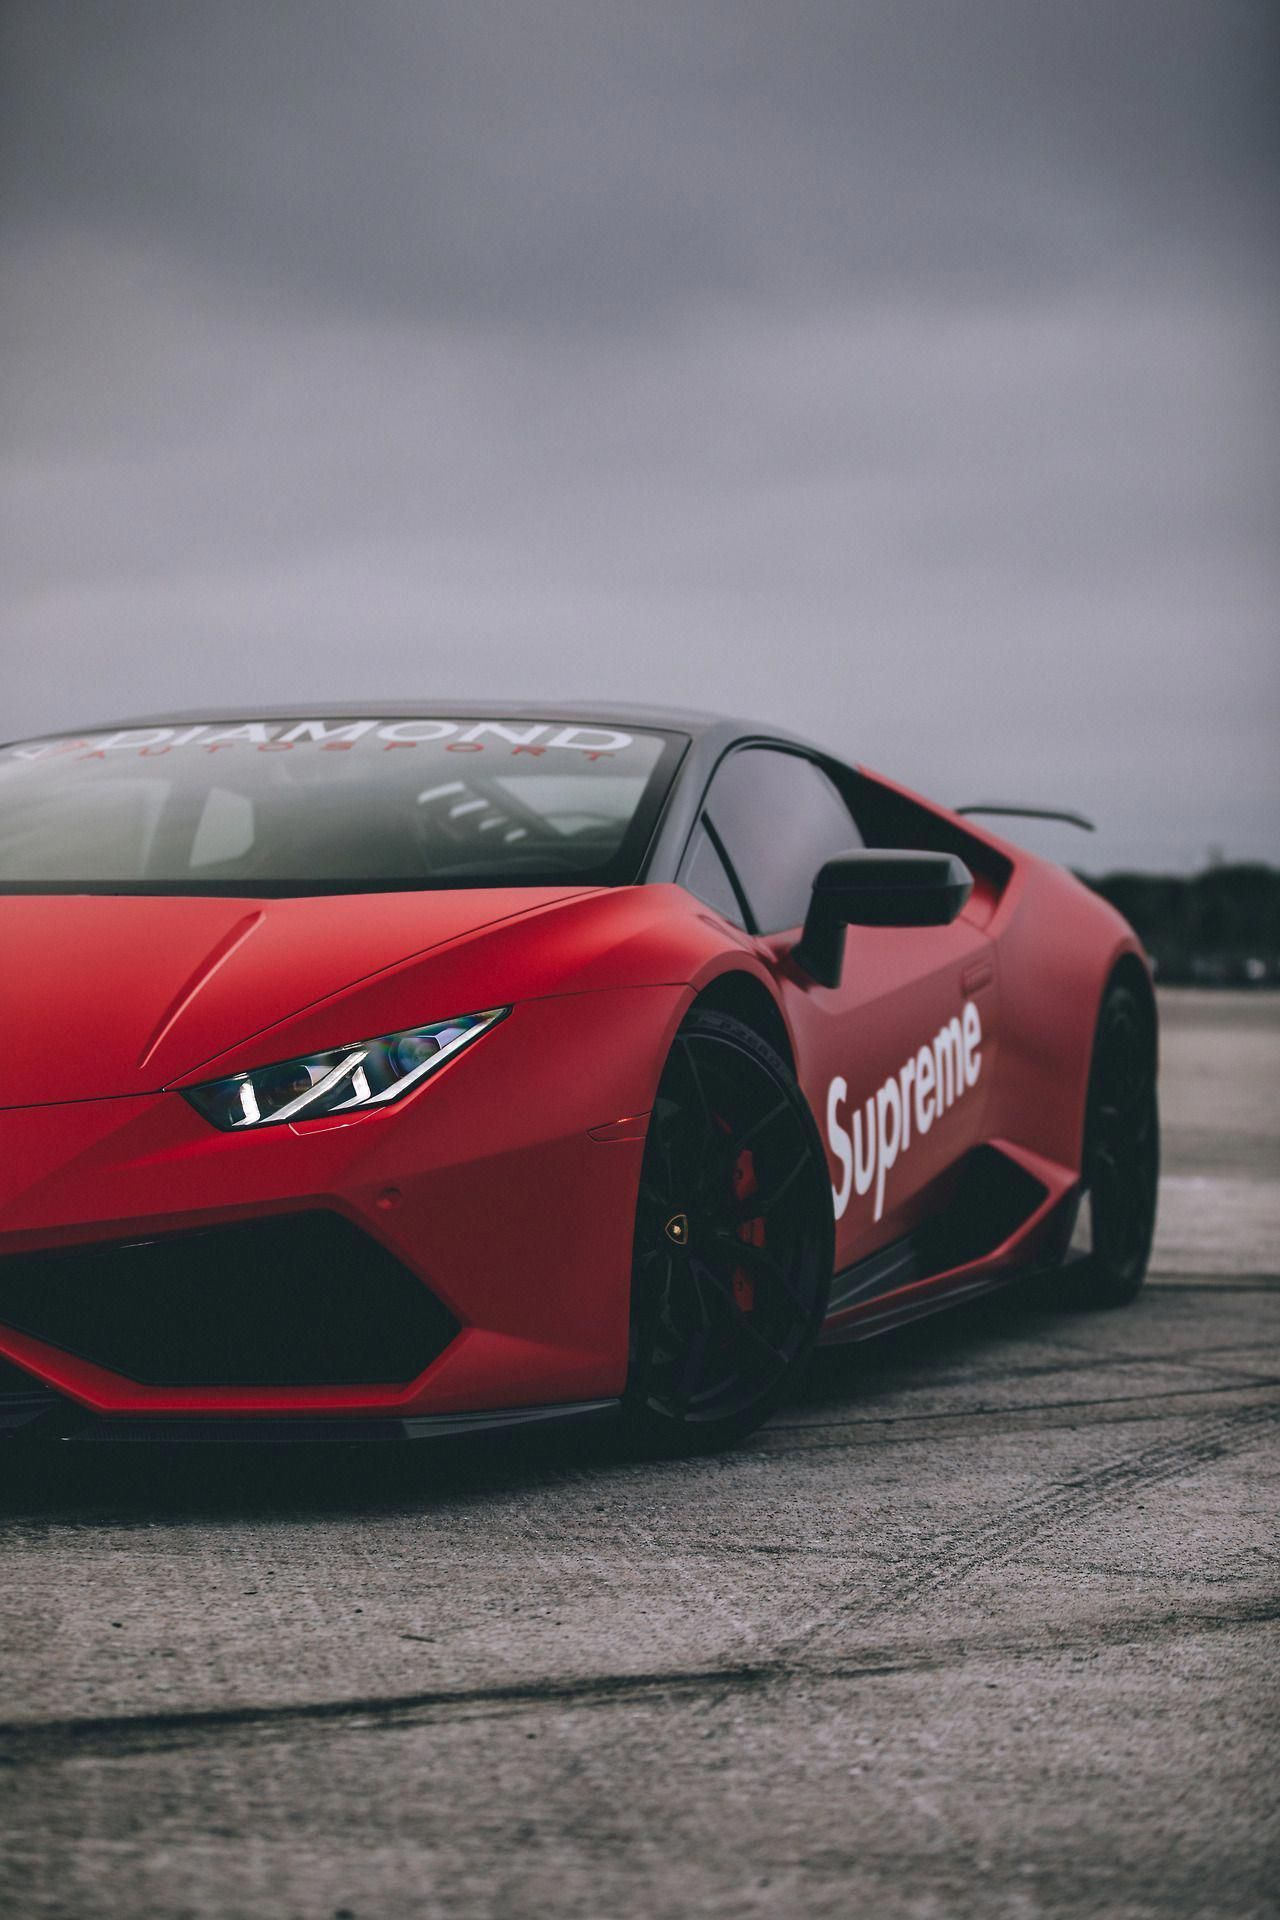 Best Sport Cars Affordable Small Luxury Cool Cars Lamborghini Aventador Lamborghiniaventadororang Cool Sports Cars Sports Car Wallpaper Super Luxury Cars